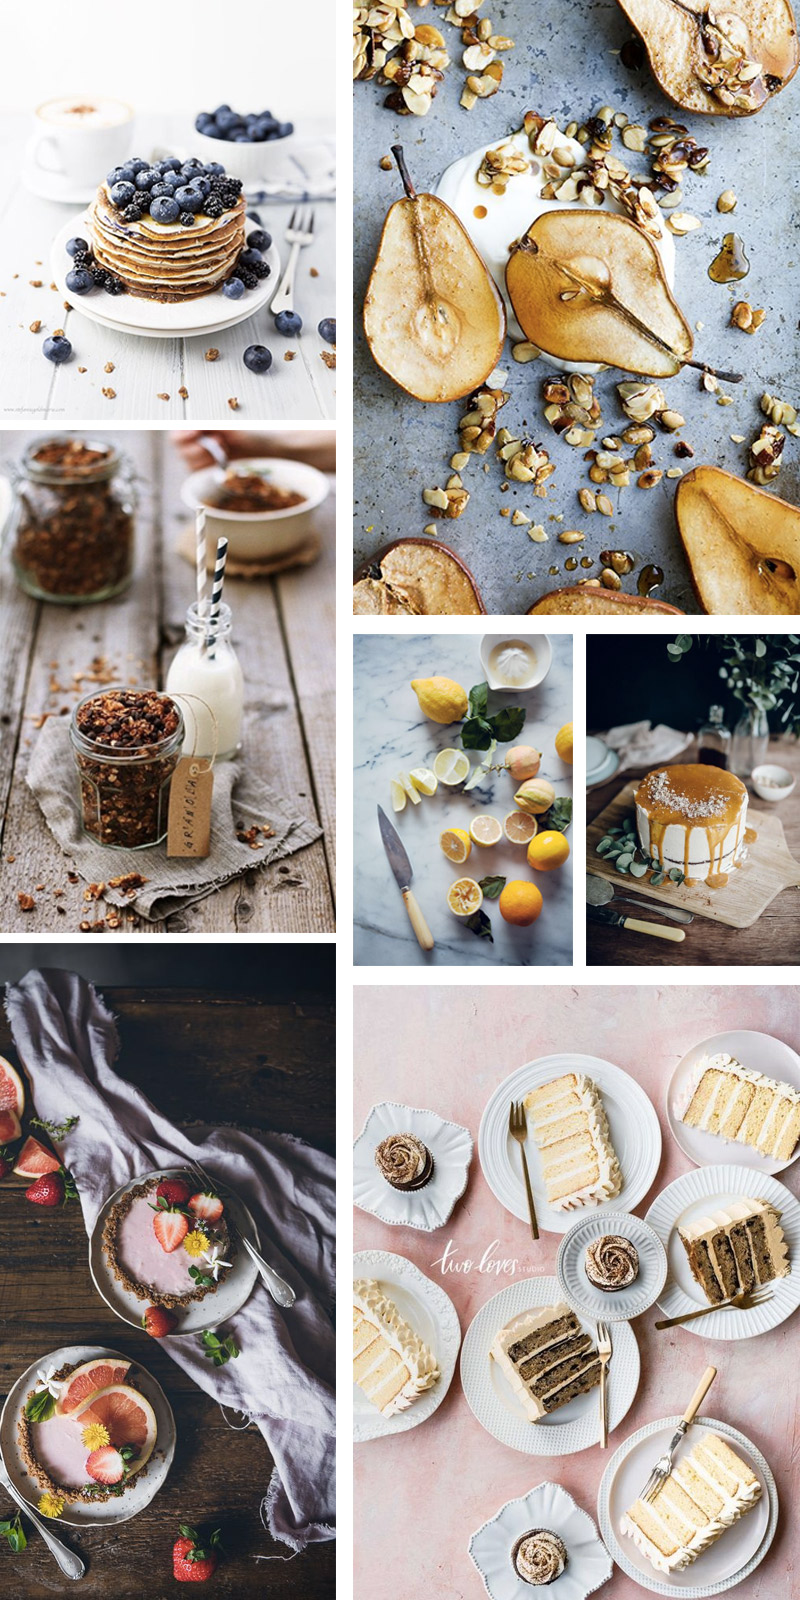 fonds-photo-culinaire-importance-exemples